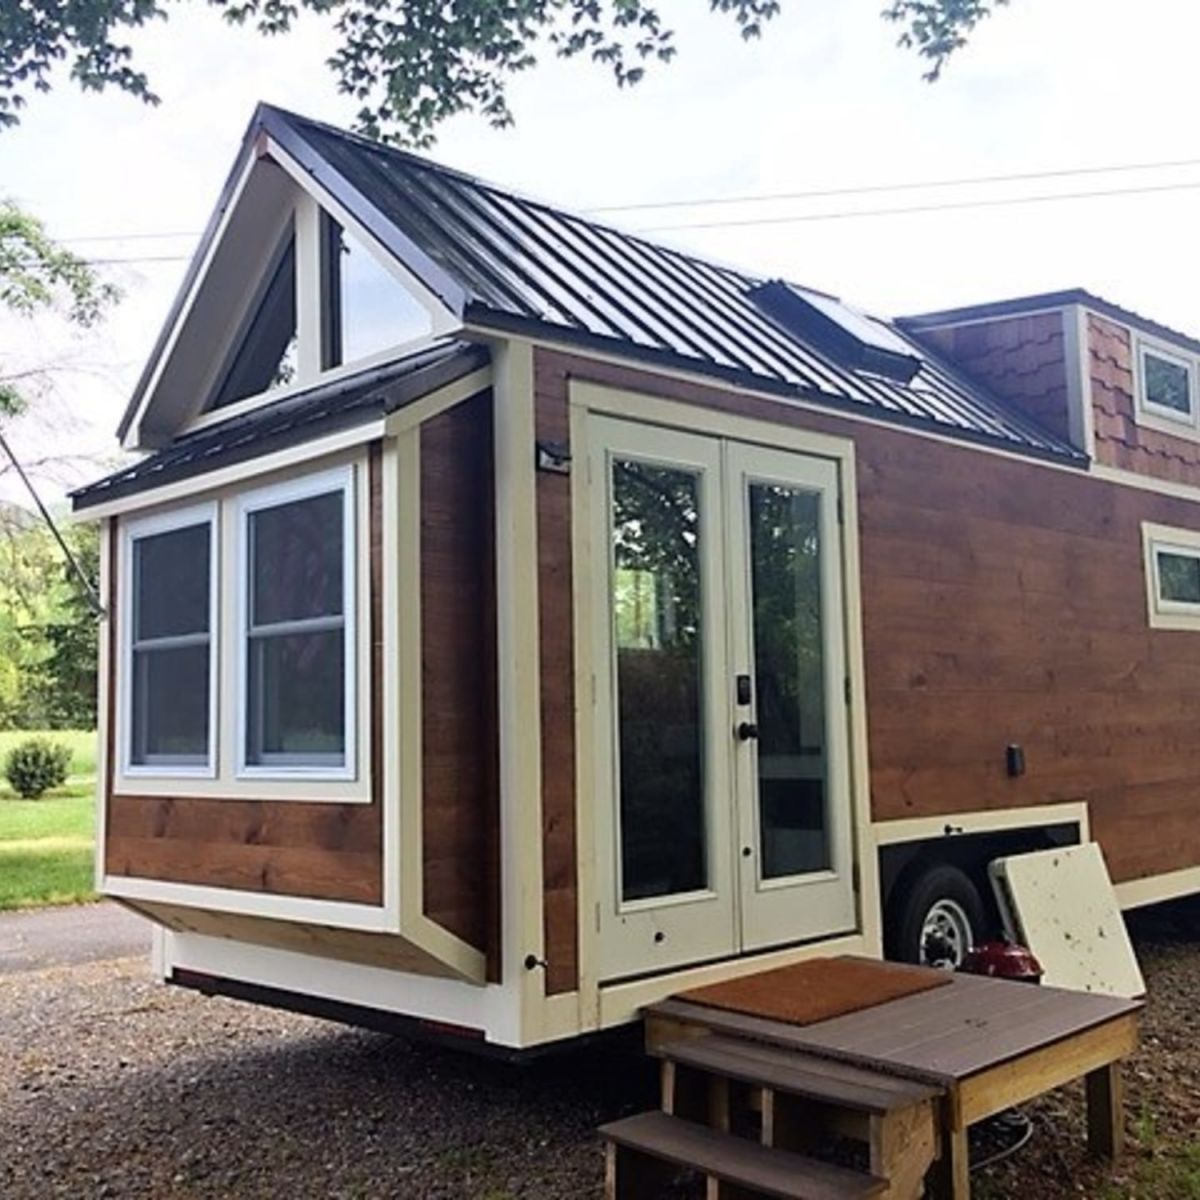 Free Home Rental Listings: Tiny House For Rent In Eatonton